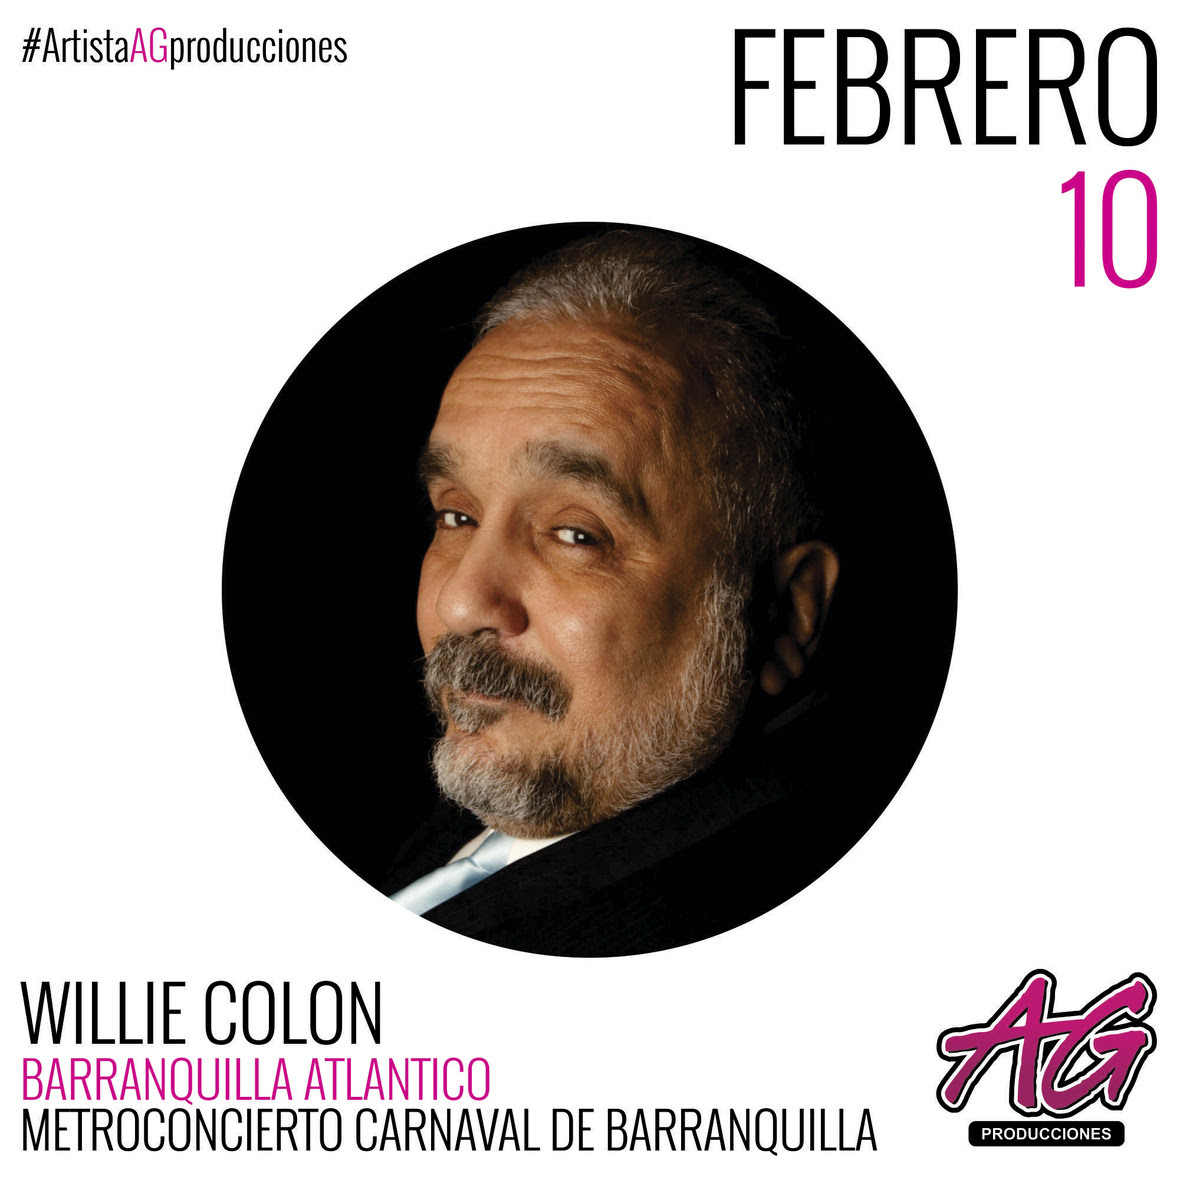 07 AG PRODUCCIONES - WILLIE COLON FEBRERO 10